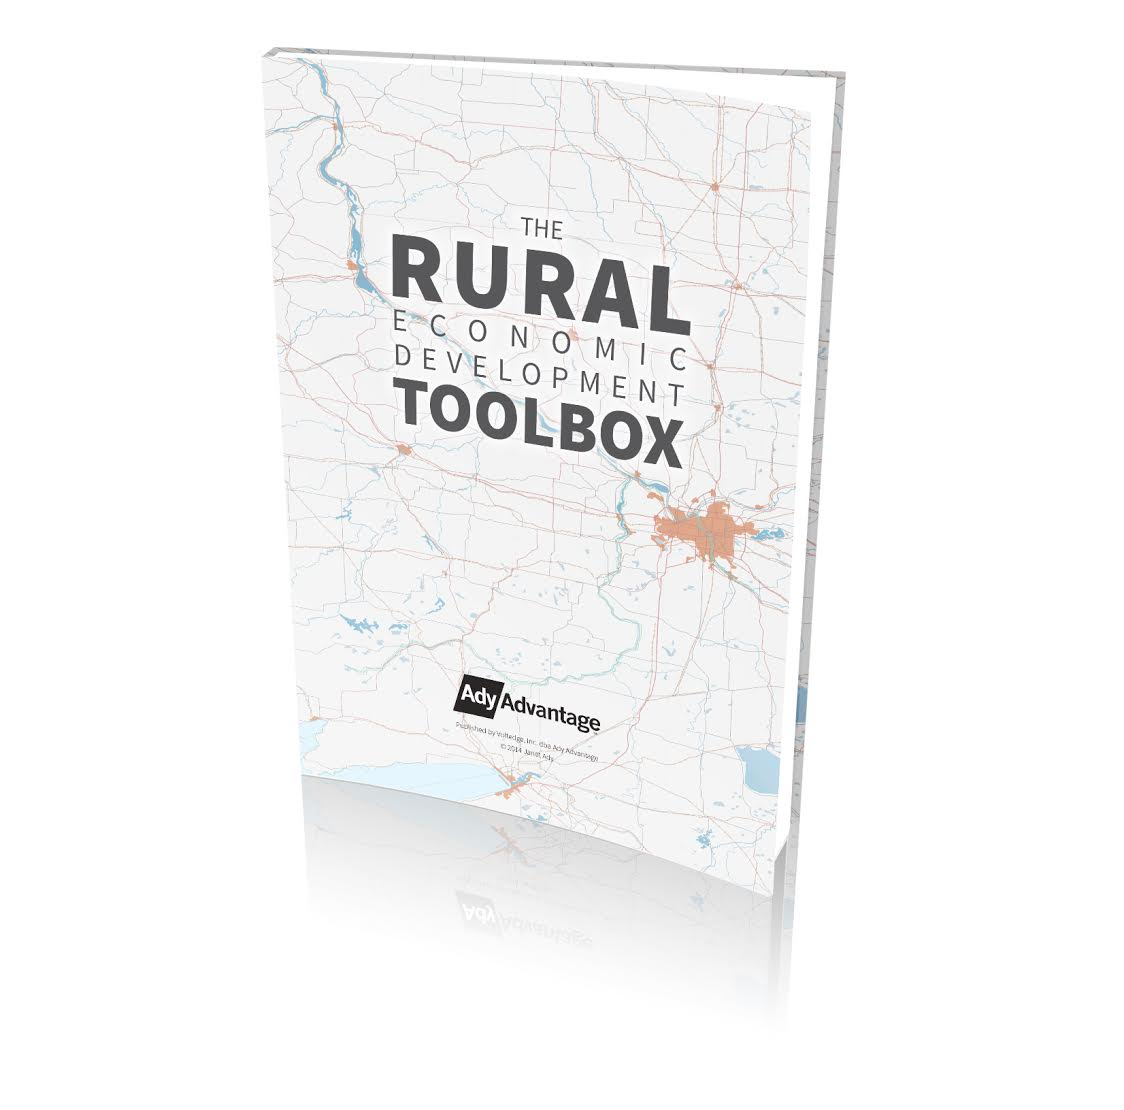 Rural Economic Development Toolbox